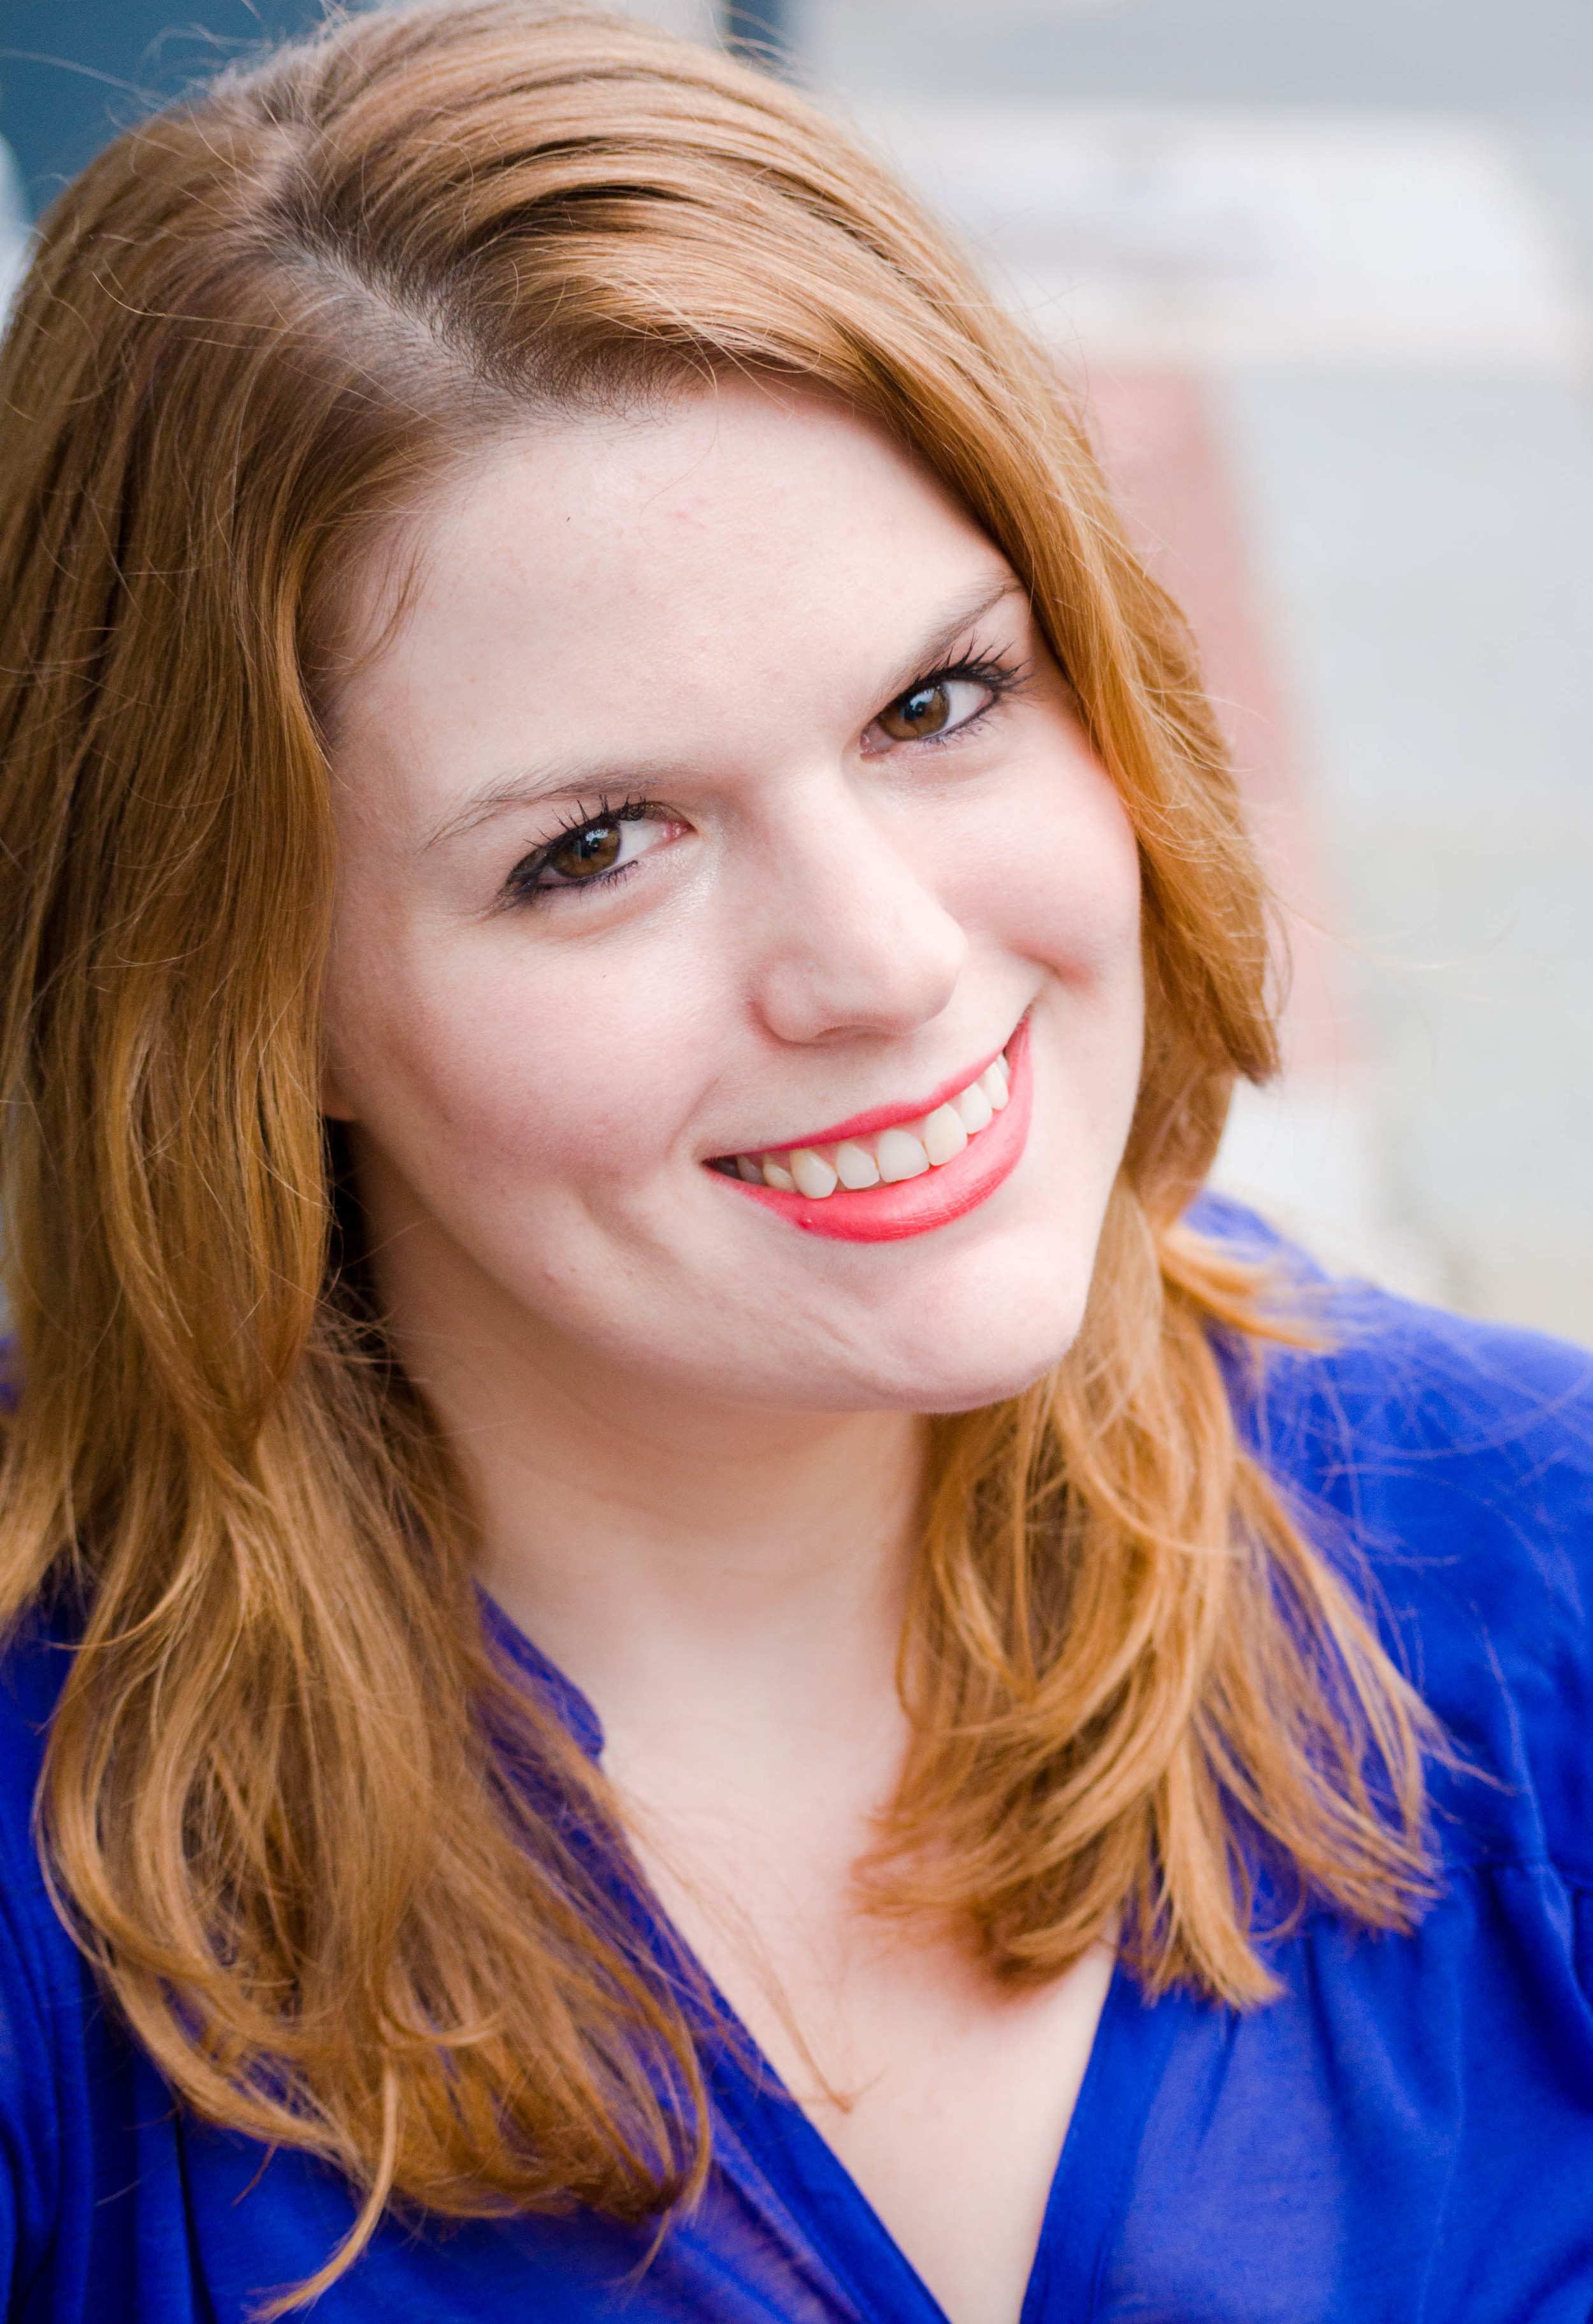 Alexandra Smith plays William walker and is a member of the ensemble.